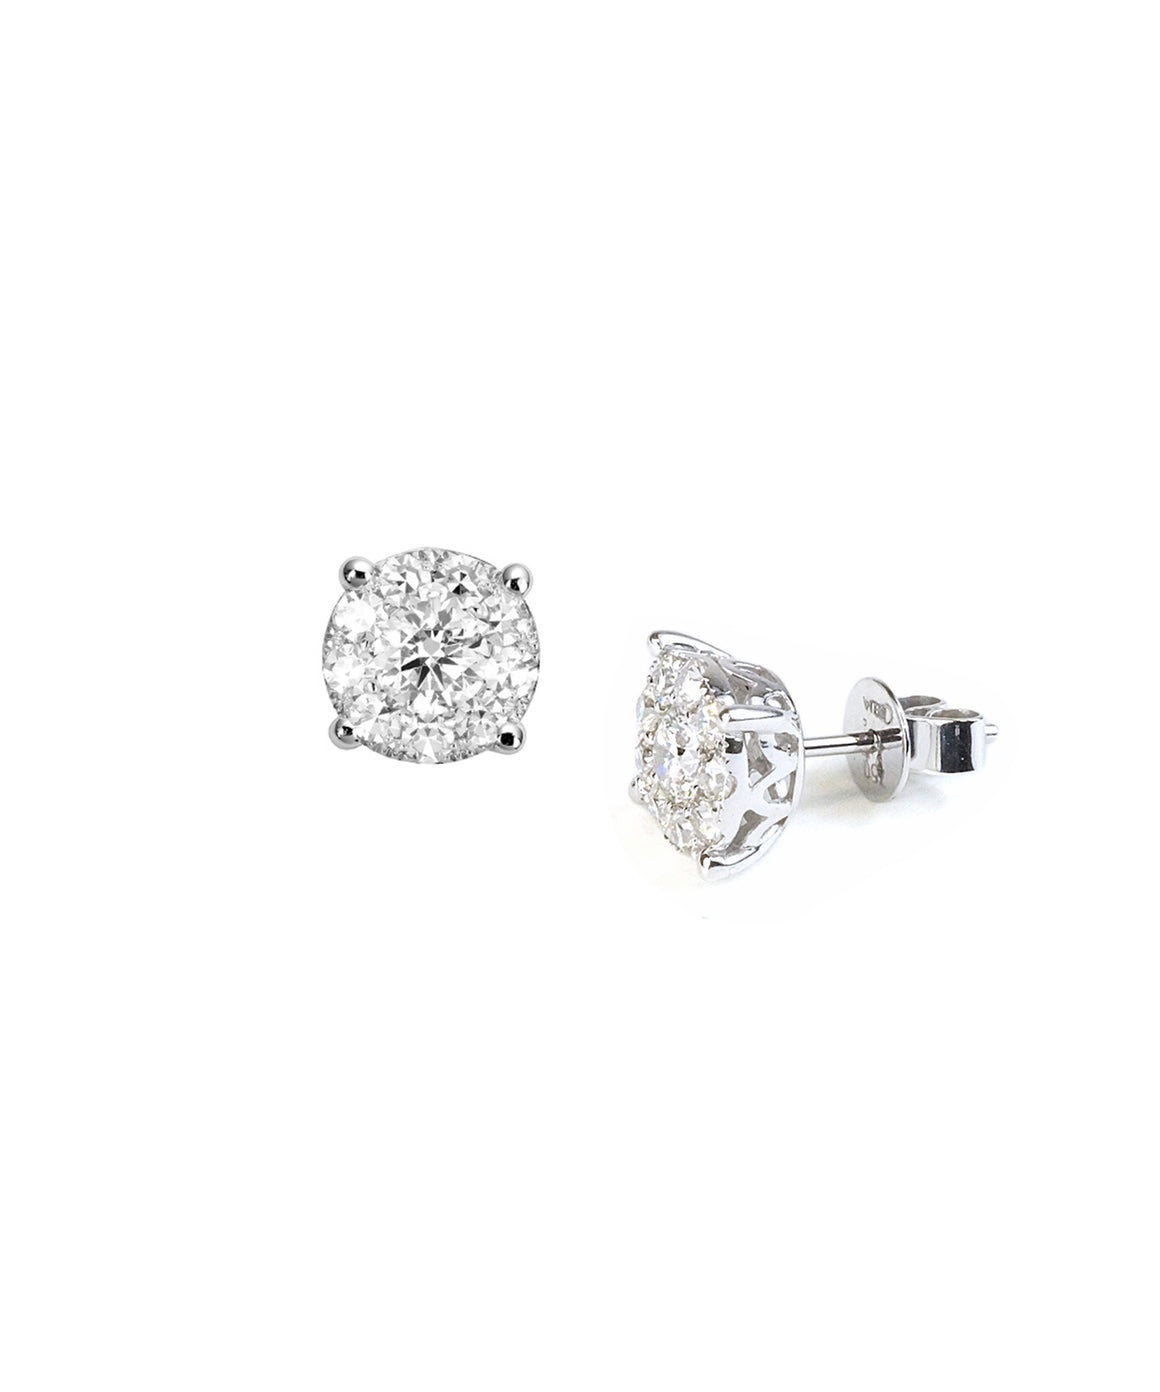 Diamond Cluster Studs - Lesley Ann Jewels